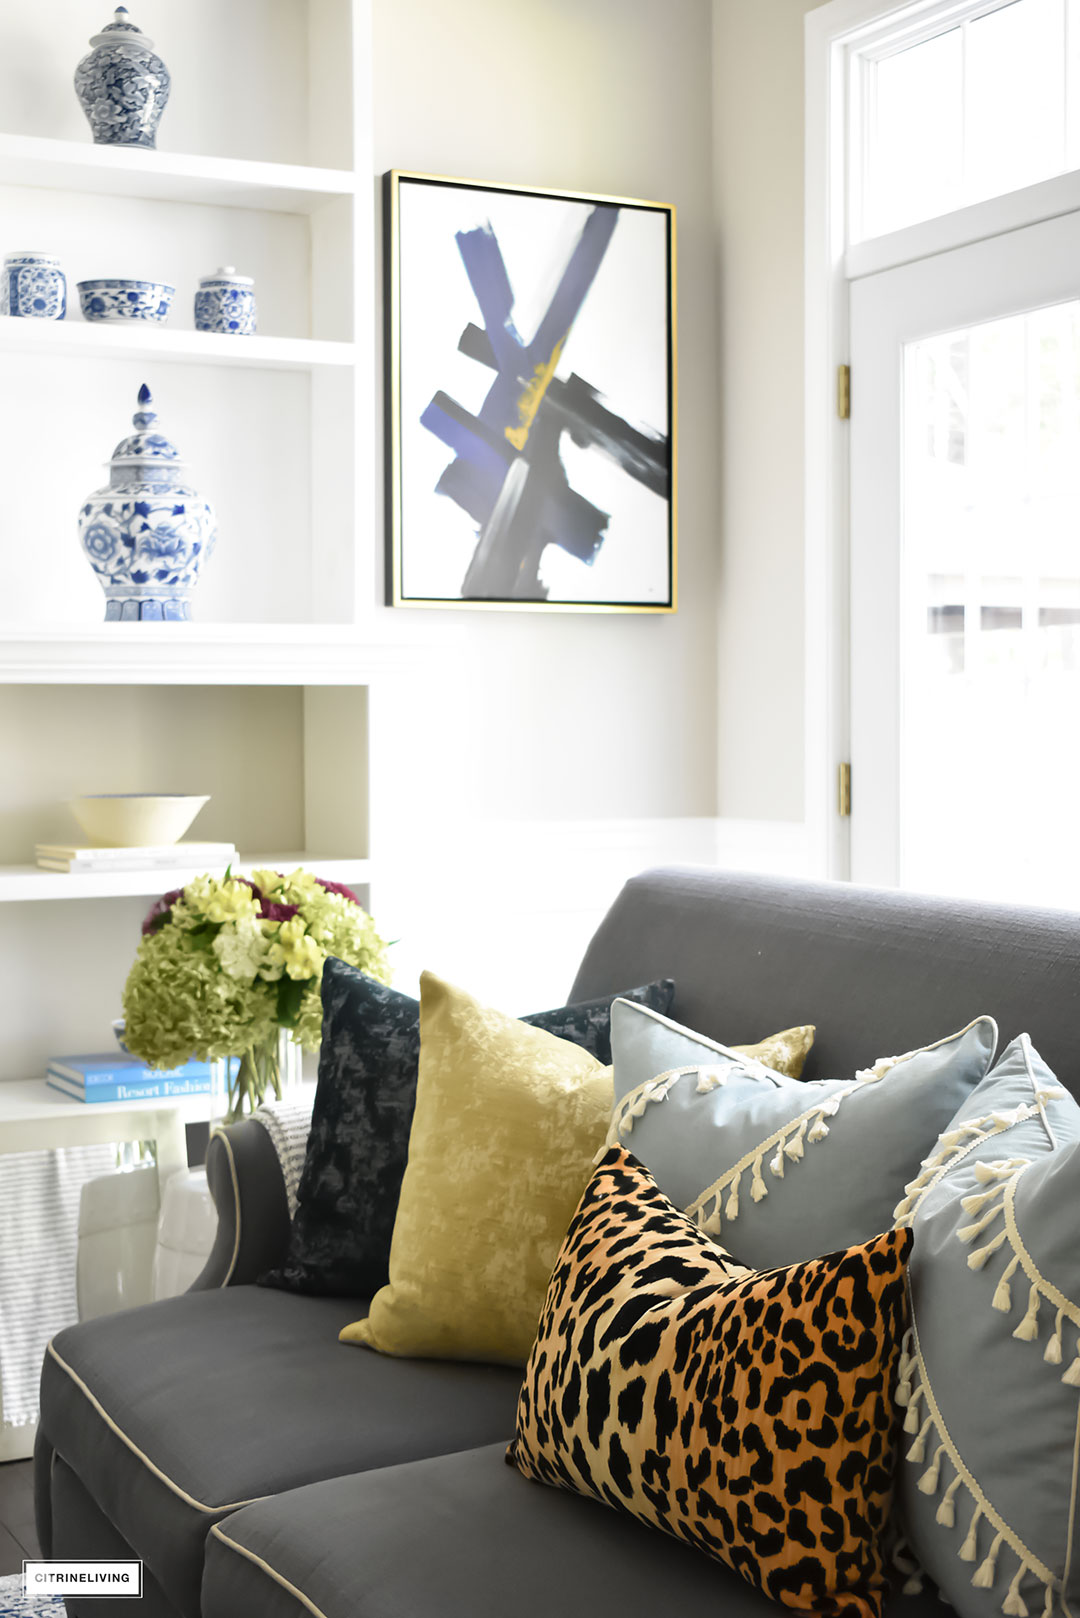 Fall Home Tour with navy and gold velvet pillows and accents. Blue and white ginger jars and leopard pillow.